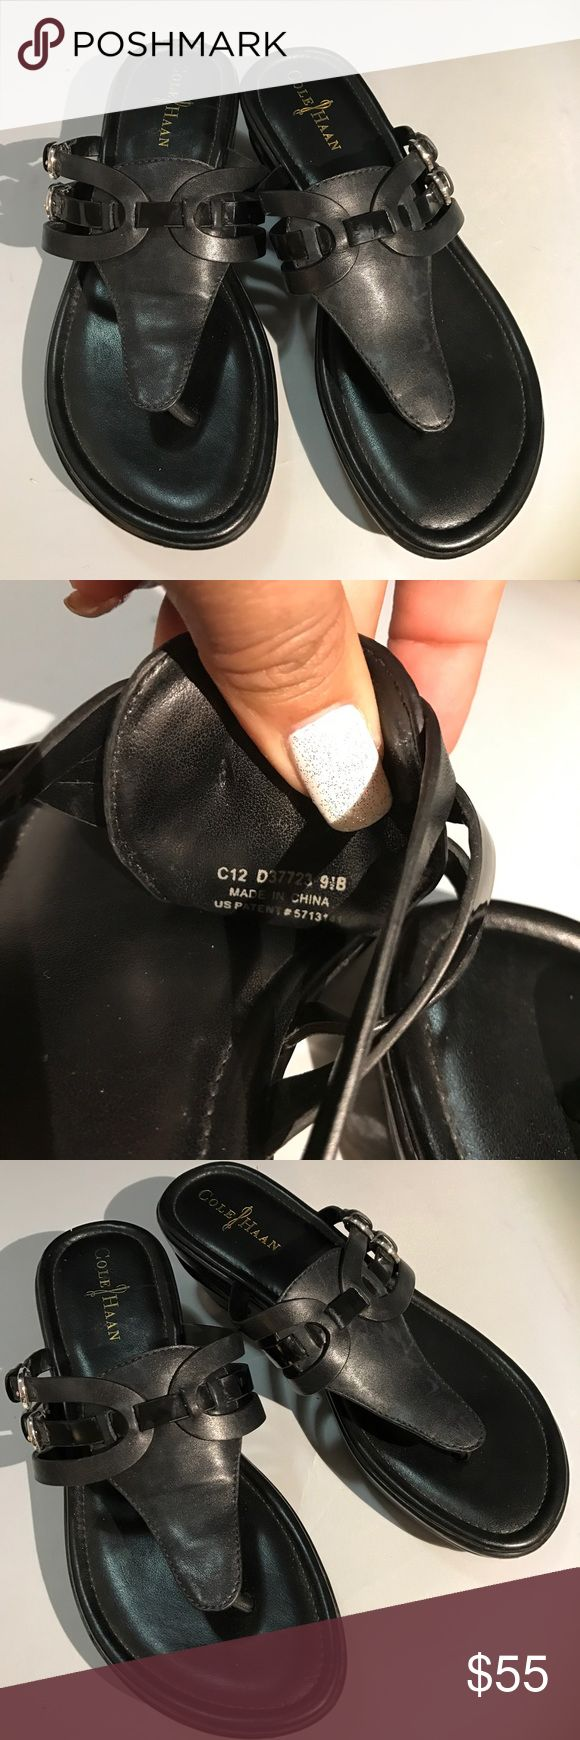 Cold Haan Sandals Nike Air Cole Haan Black Sandal Nike Air Soles Size 9.5   No Box No Trades Good Condition. Cole Haan Shoes Sandals